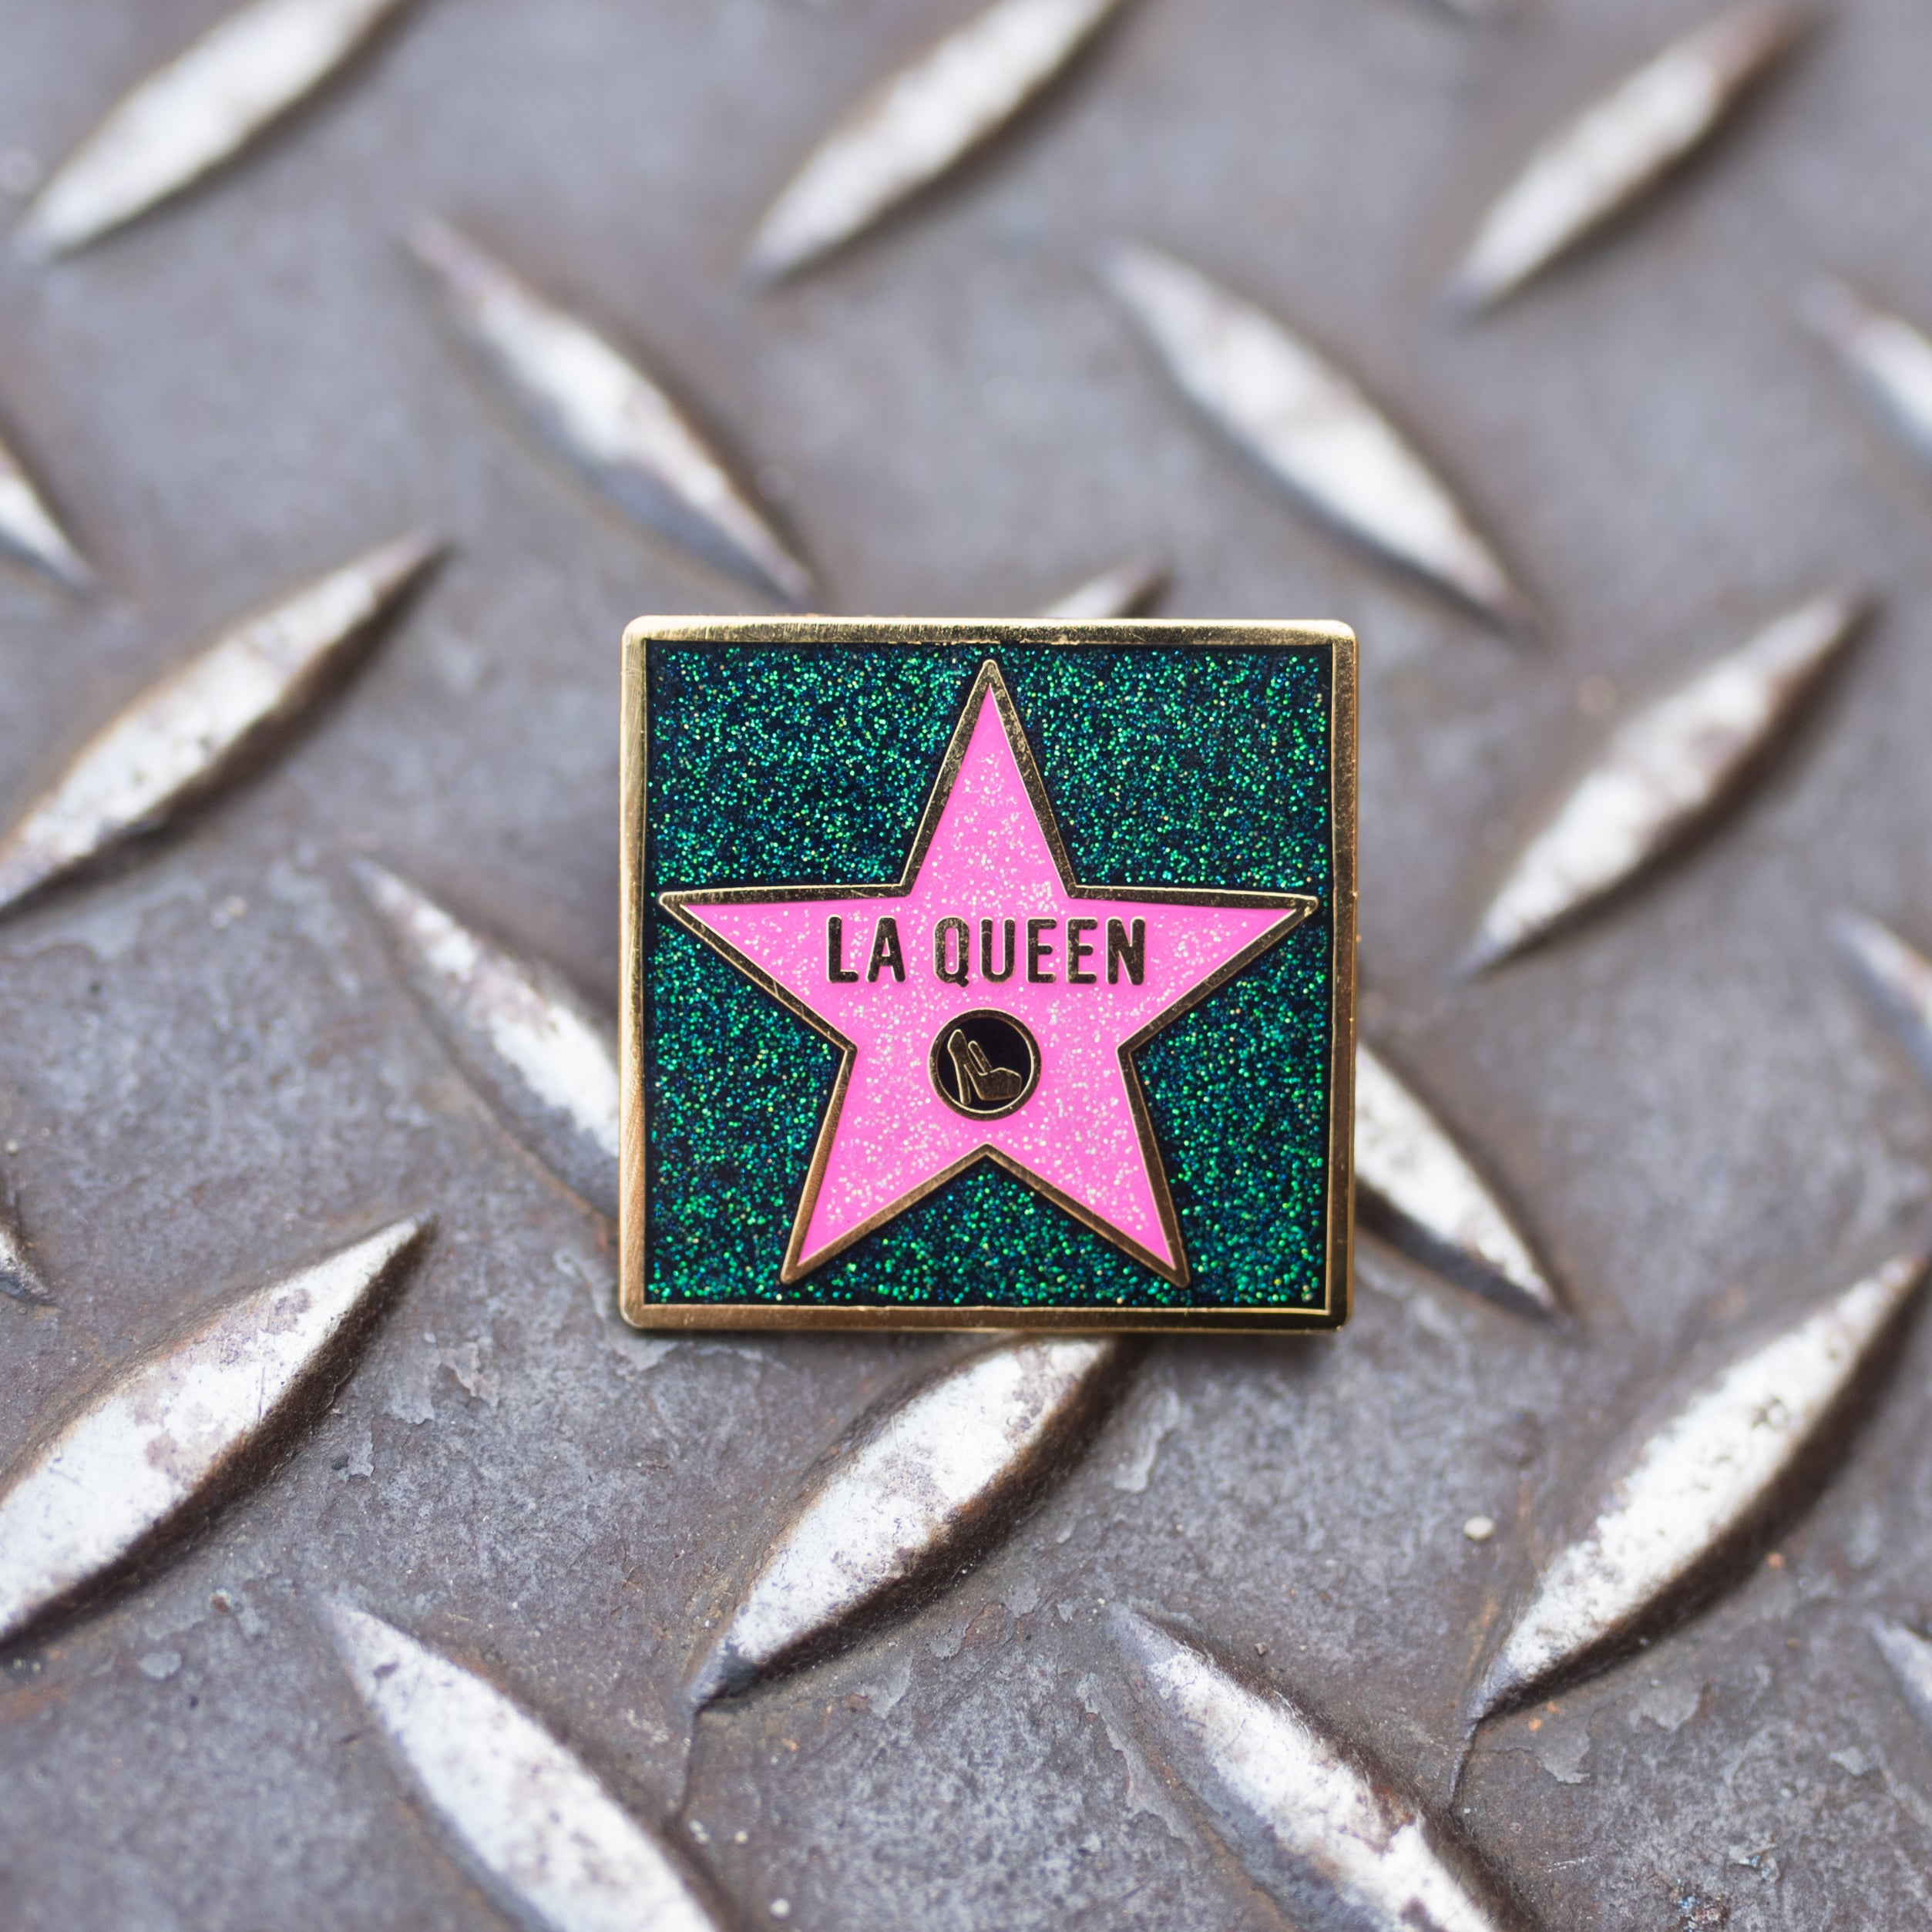 LA QUEEN pin - GAYPIN'